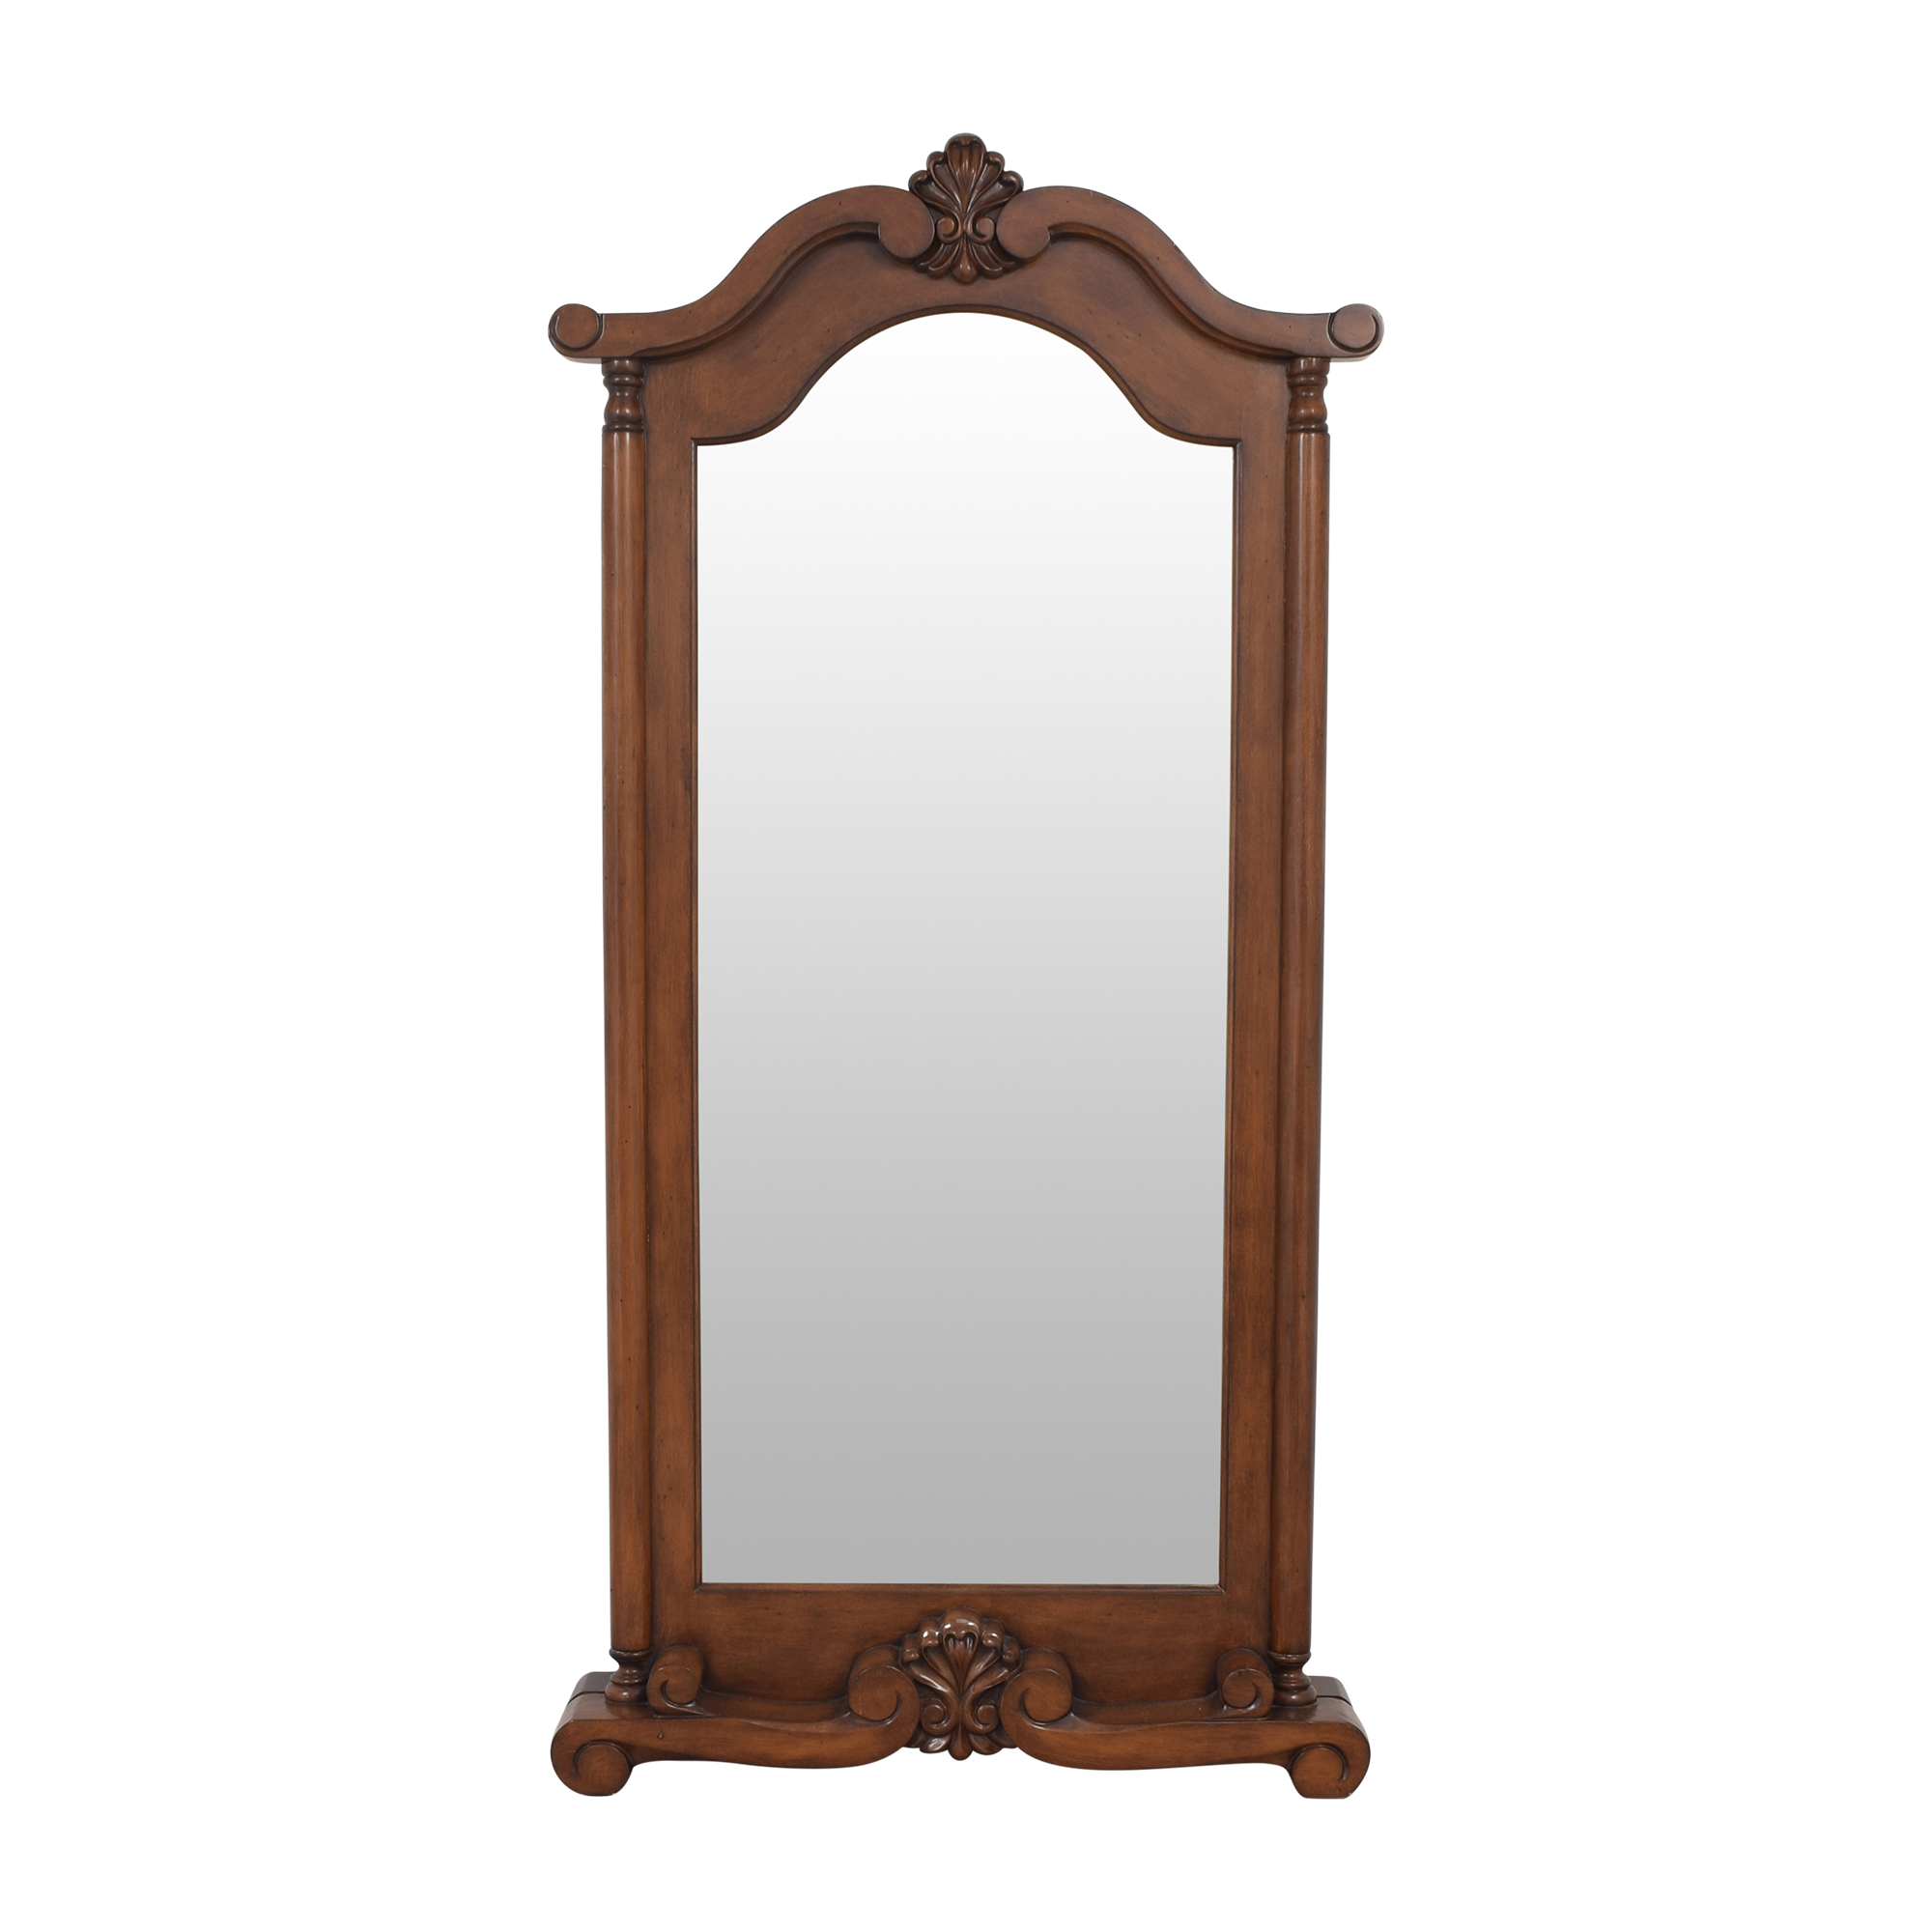 Coaster Grand Warm Brown Floor Mirror / Decor